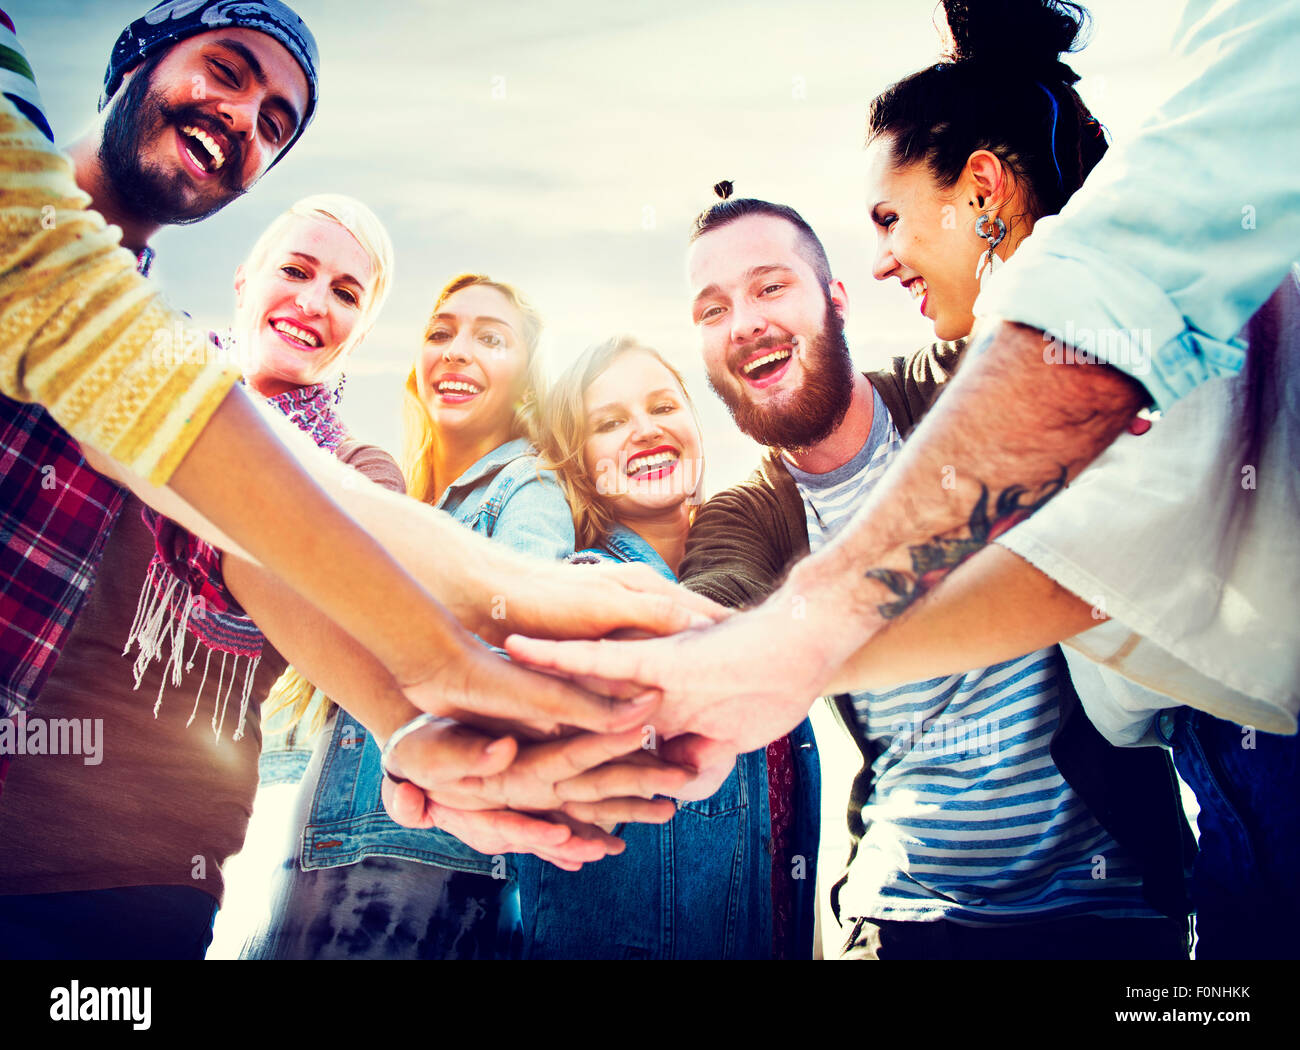 Friendship Join Hands Celebration Summer Beach Concept - Stock Image